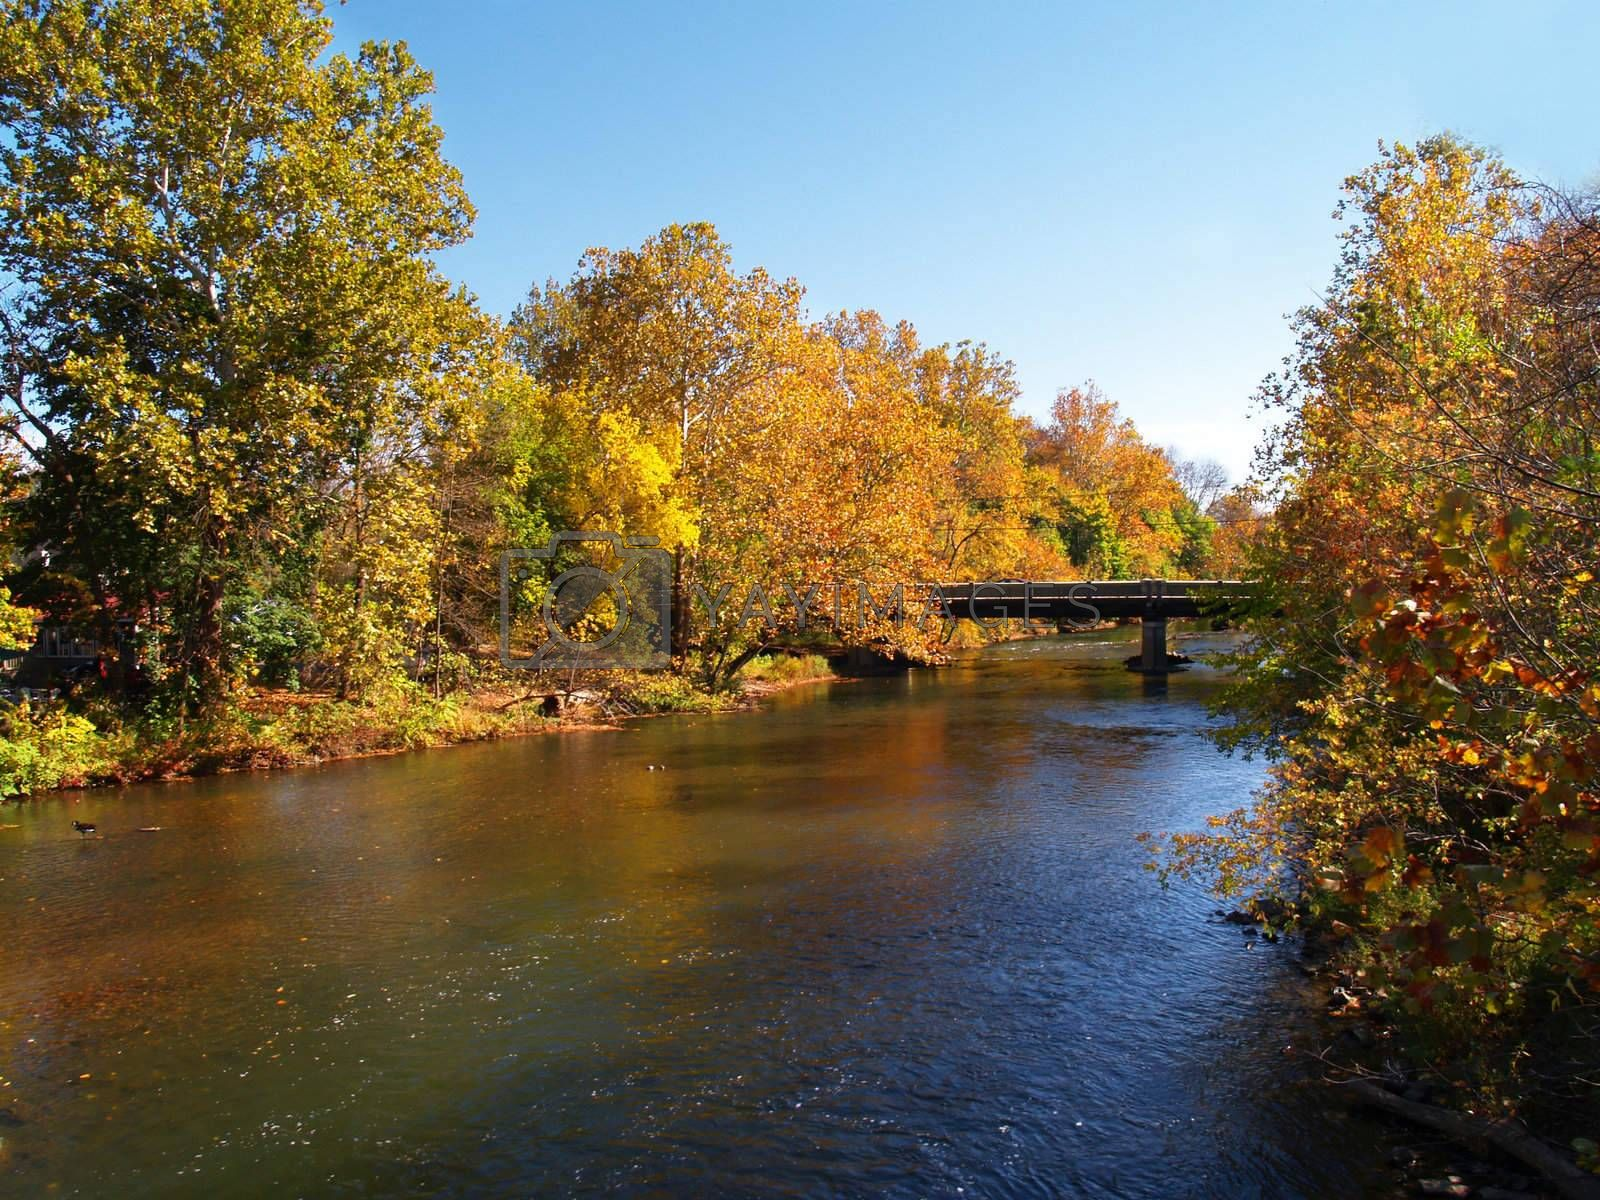 river and trees in autumn in Cliinton, New Jersey